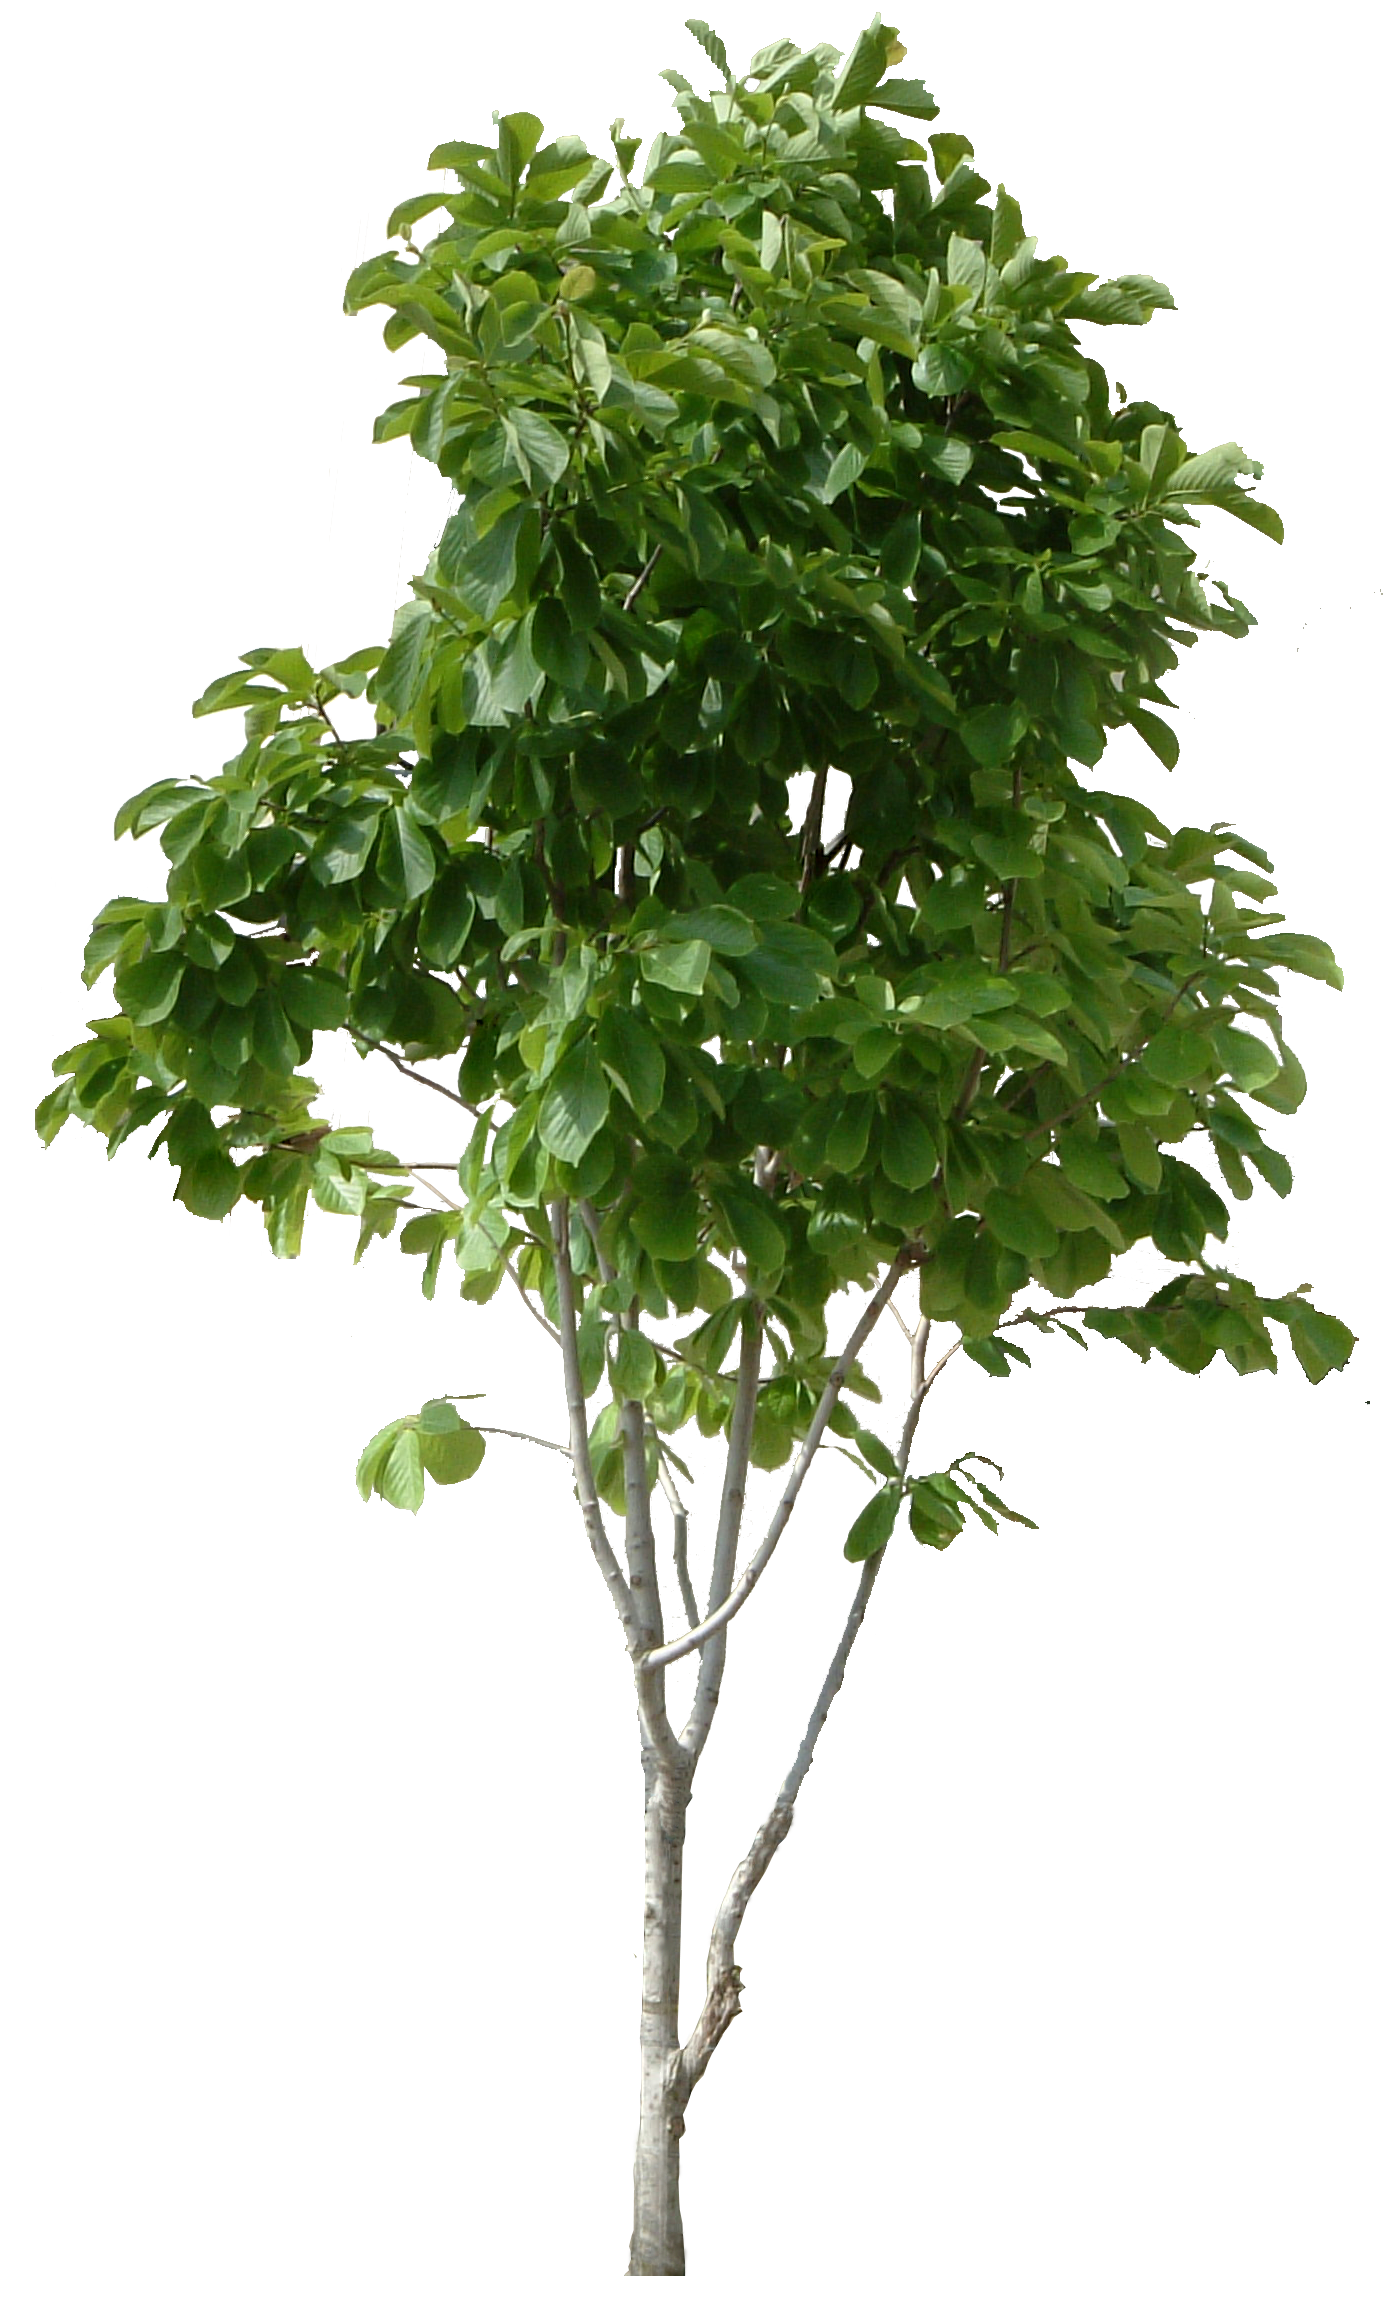 Free Tree Png Images & Free Tree Images.png Transparent.